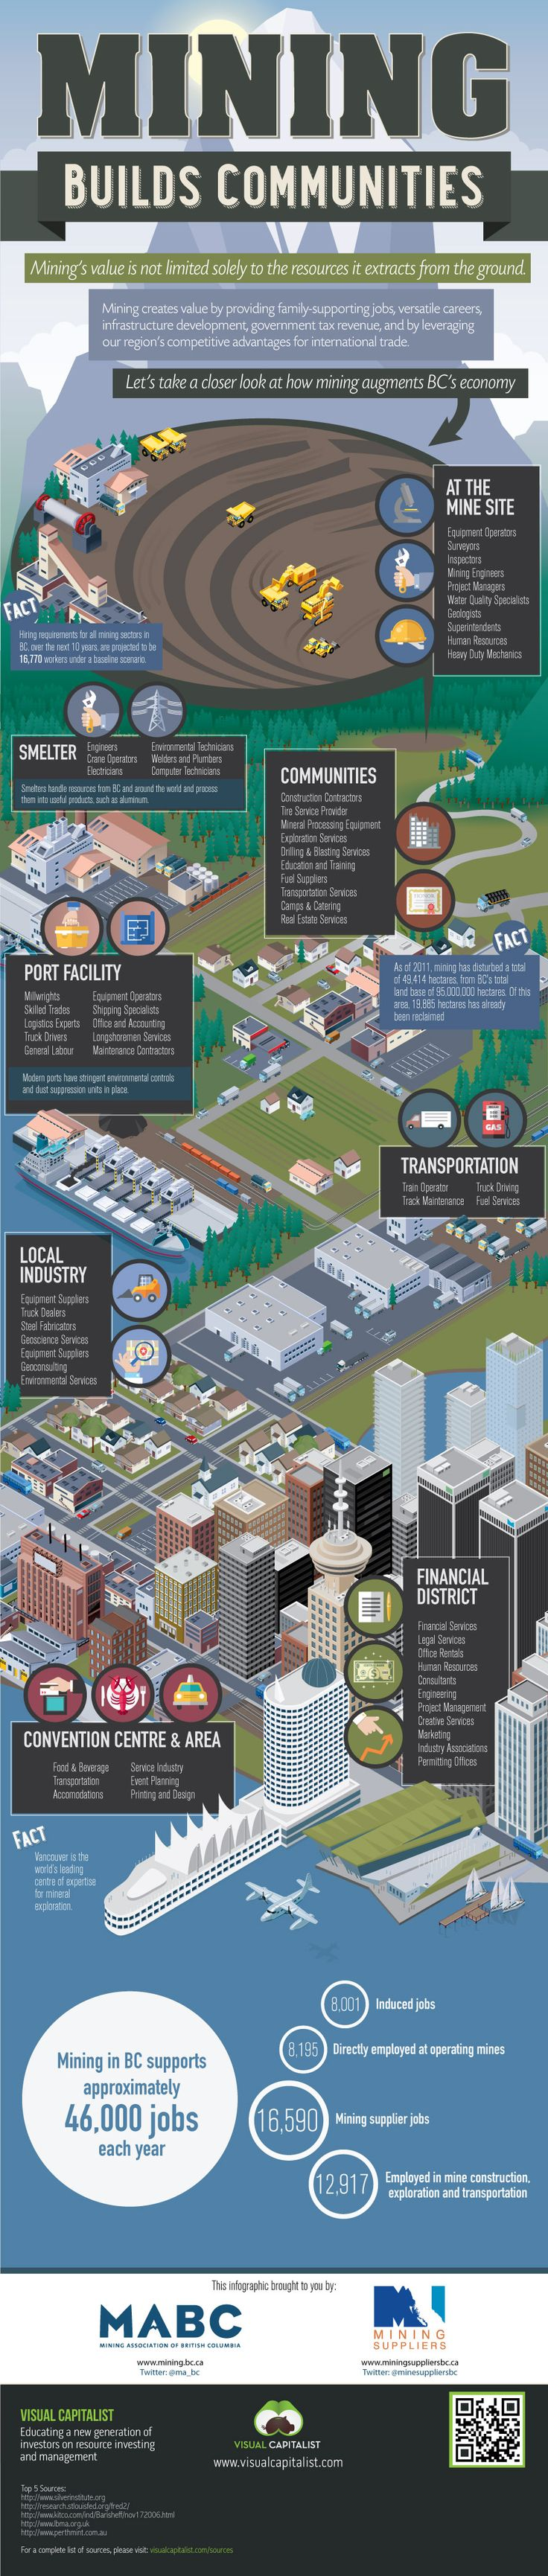 Unique Infographic Design, Mining Builds Communities via @theconspiracy #Infographic #Design